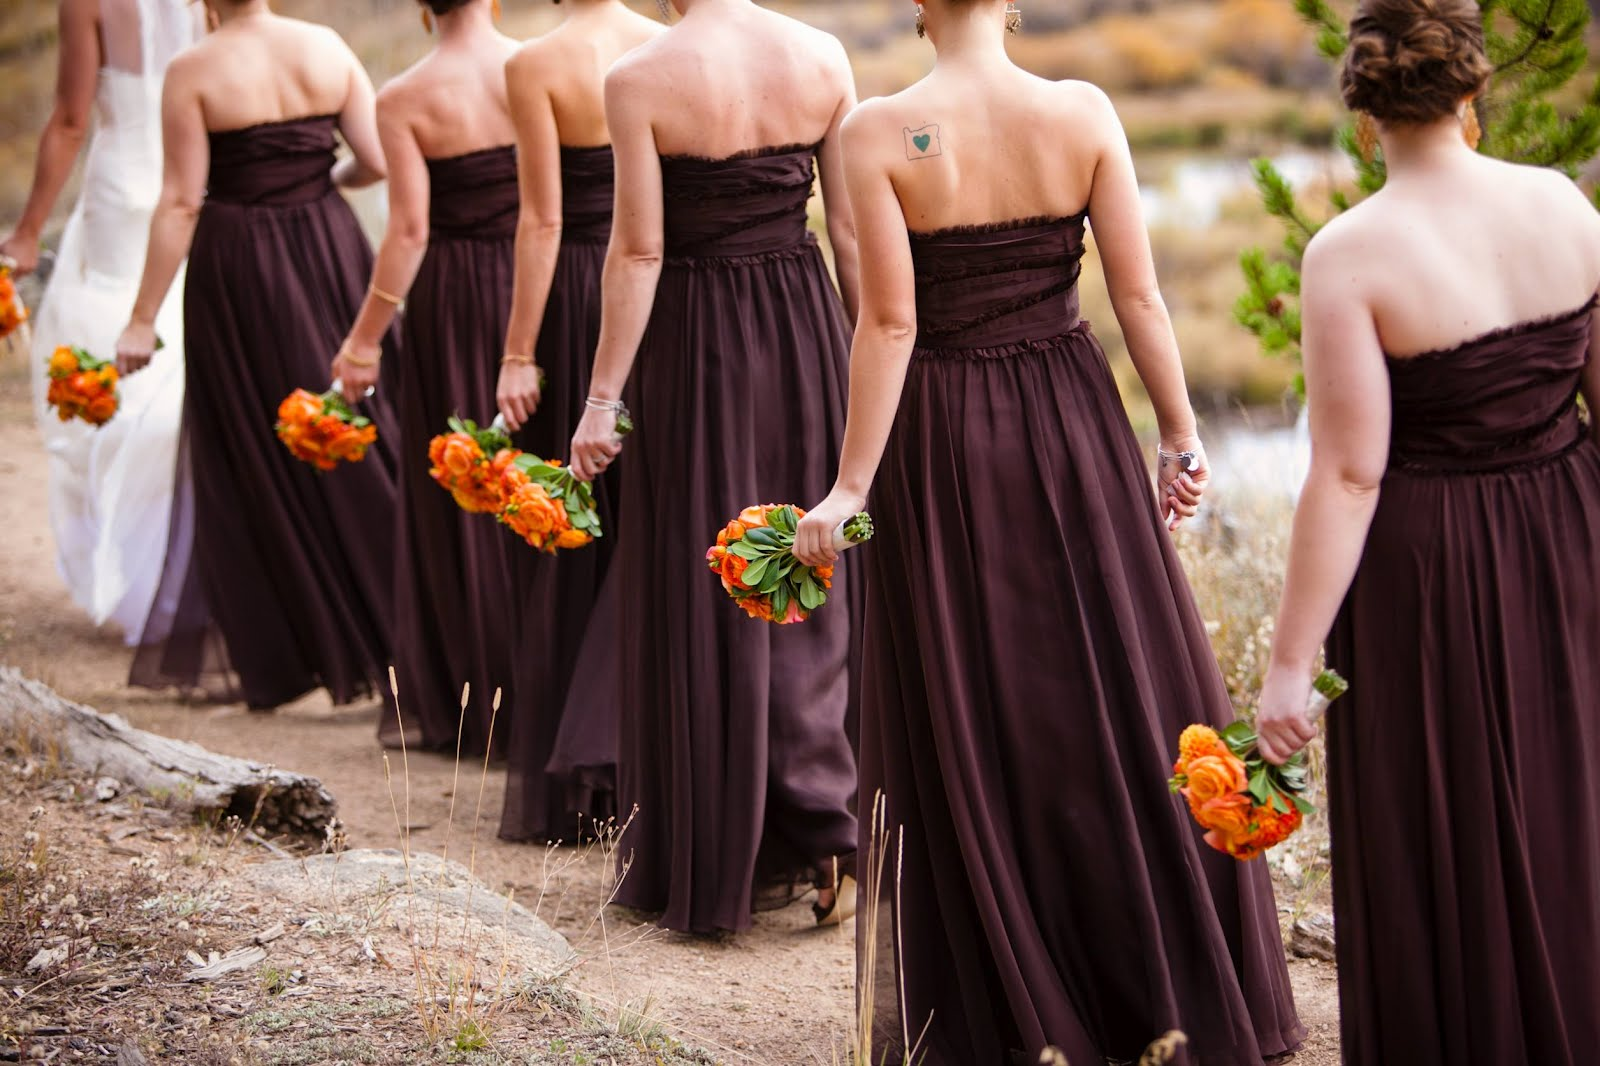 Image result for bridesmaid dresses in fall colors bridesmaid image result for bridesmaid dresses in fall colors bridesmaid dresses pinterest ombrellifo Images